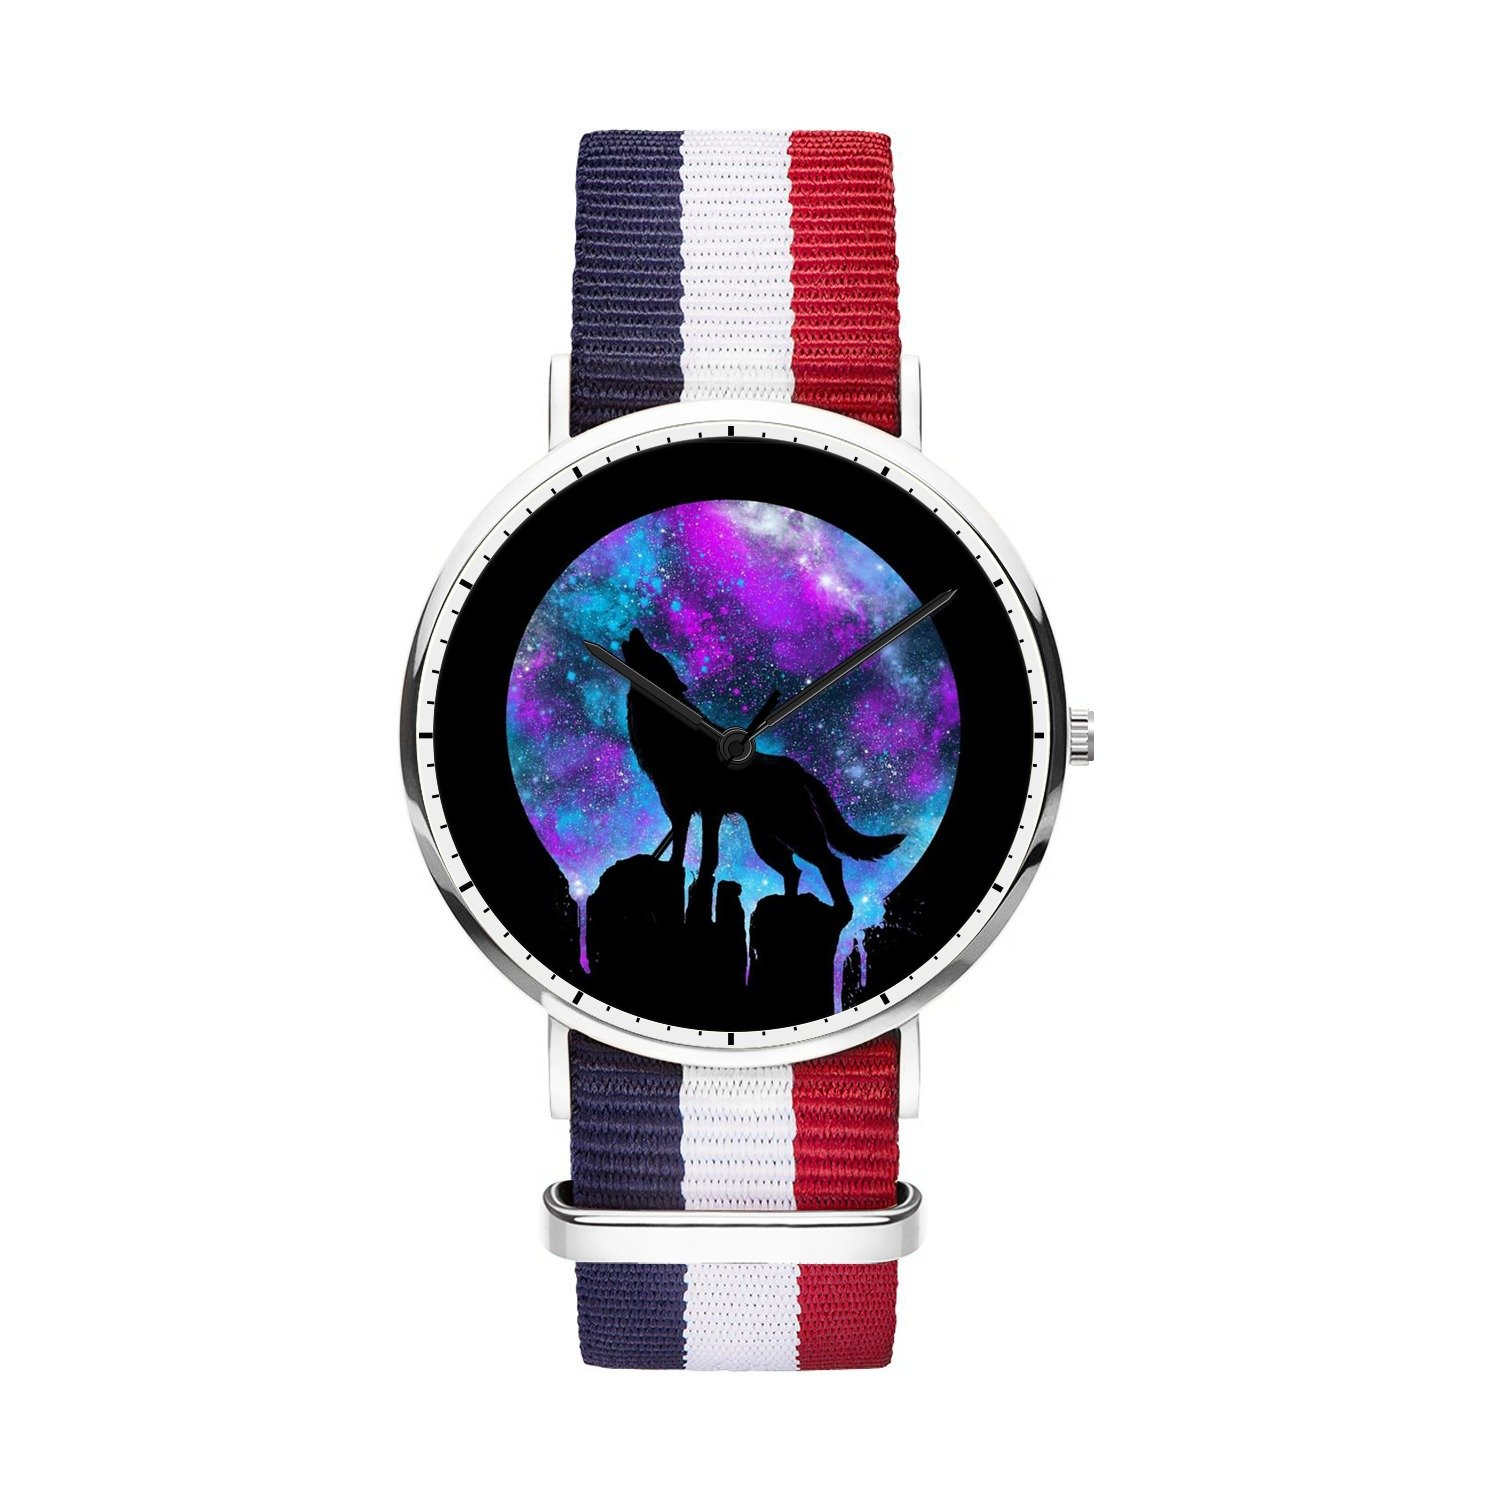 FELOOWSE Girls Watches, Women Watches, Sliver Slim Minimalist Imported Japanese Quartz PracticalWaterproof Unique Personalized Youth Fashion Design Cute Watches for Women.- Wolf